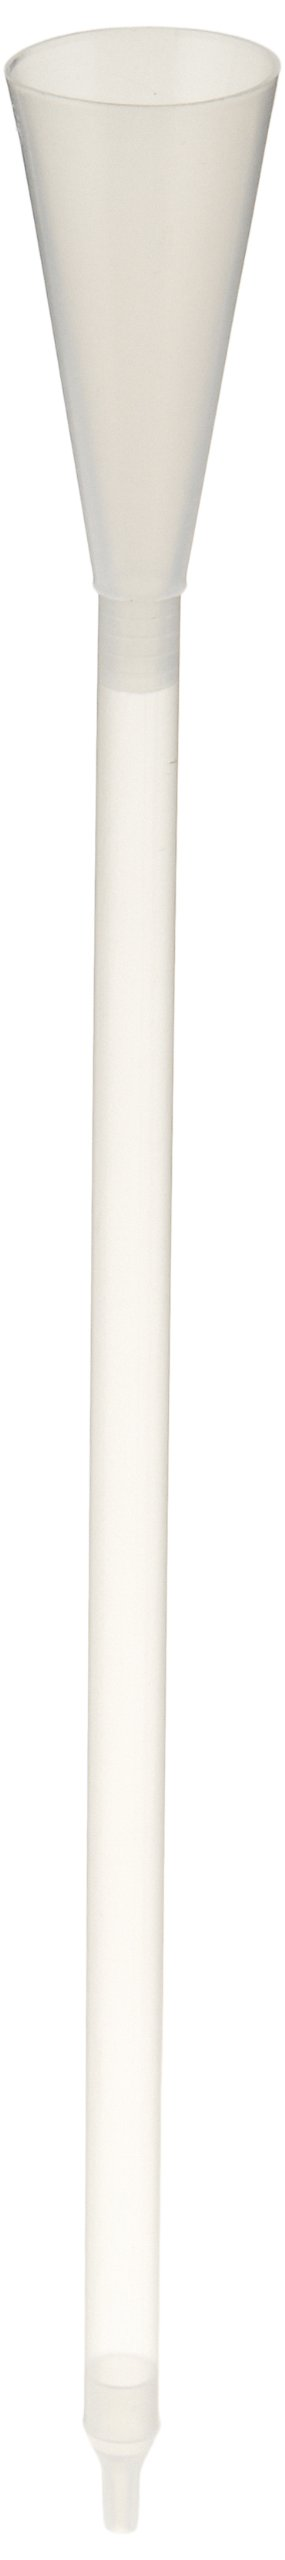 Kimble 420160-0000 Polypropylene Funnel to Accommodate 5mm NMR Tubes, Unassembled (Case of 100)